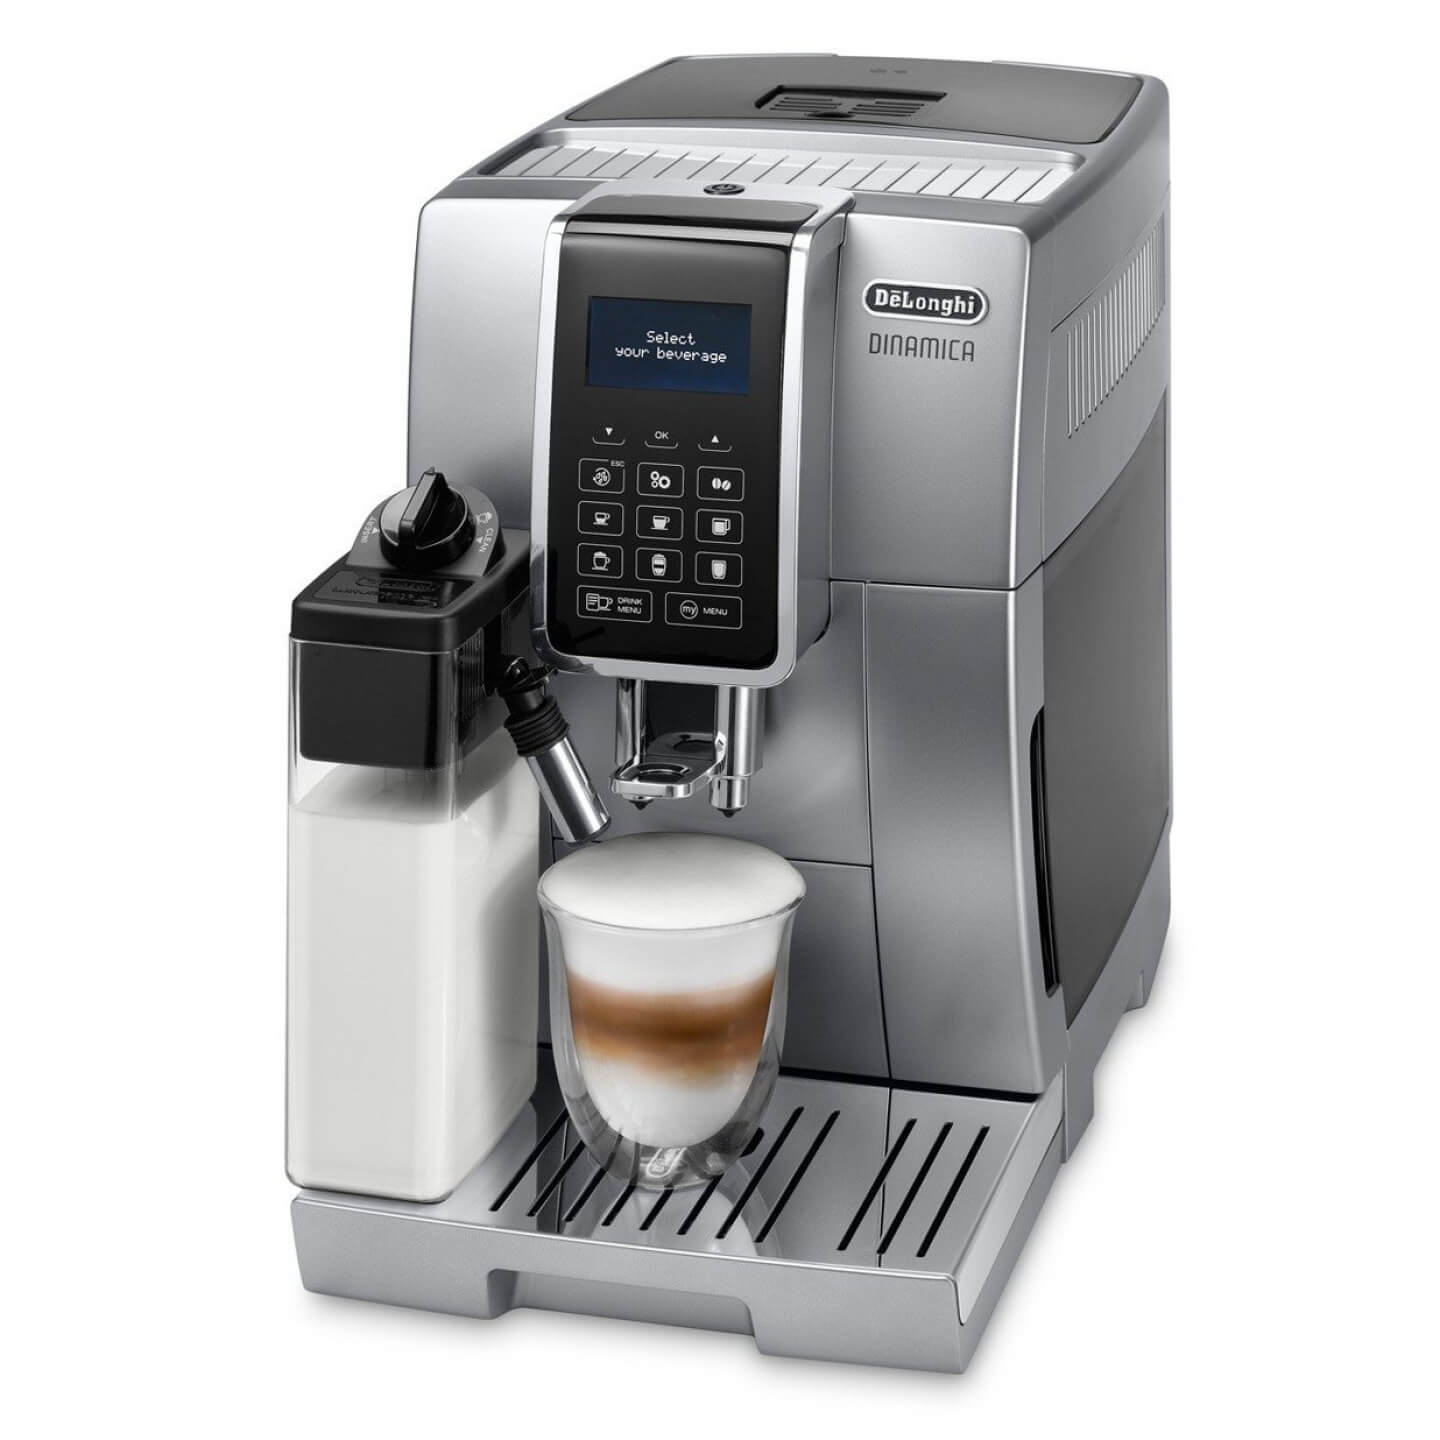 delonghi dinamica feb 3575.s